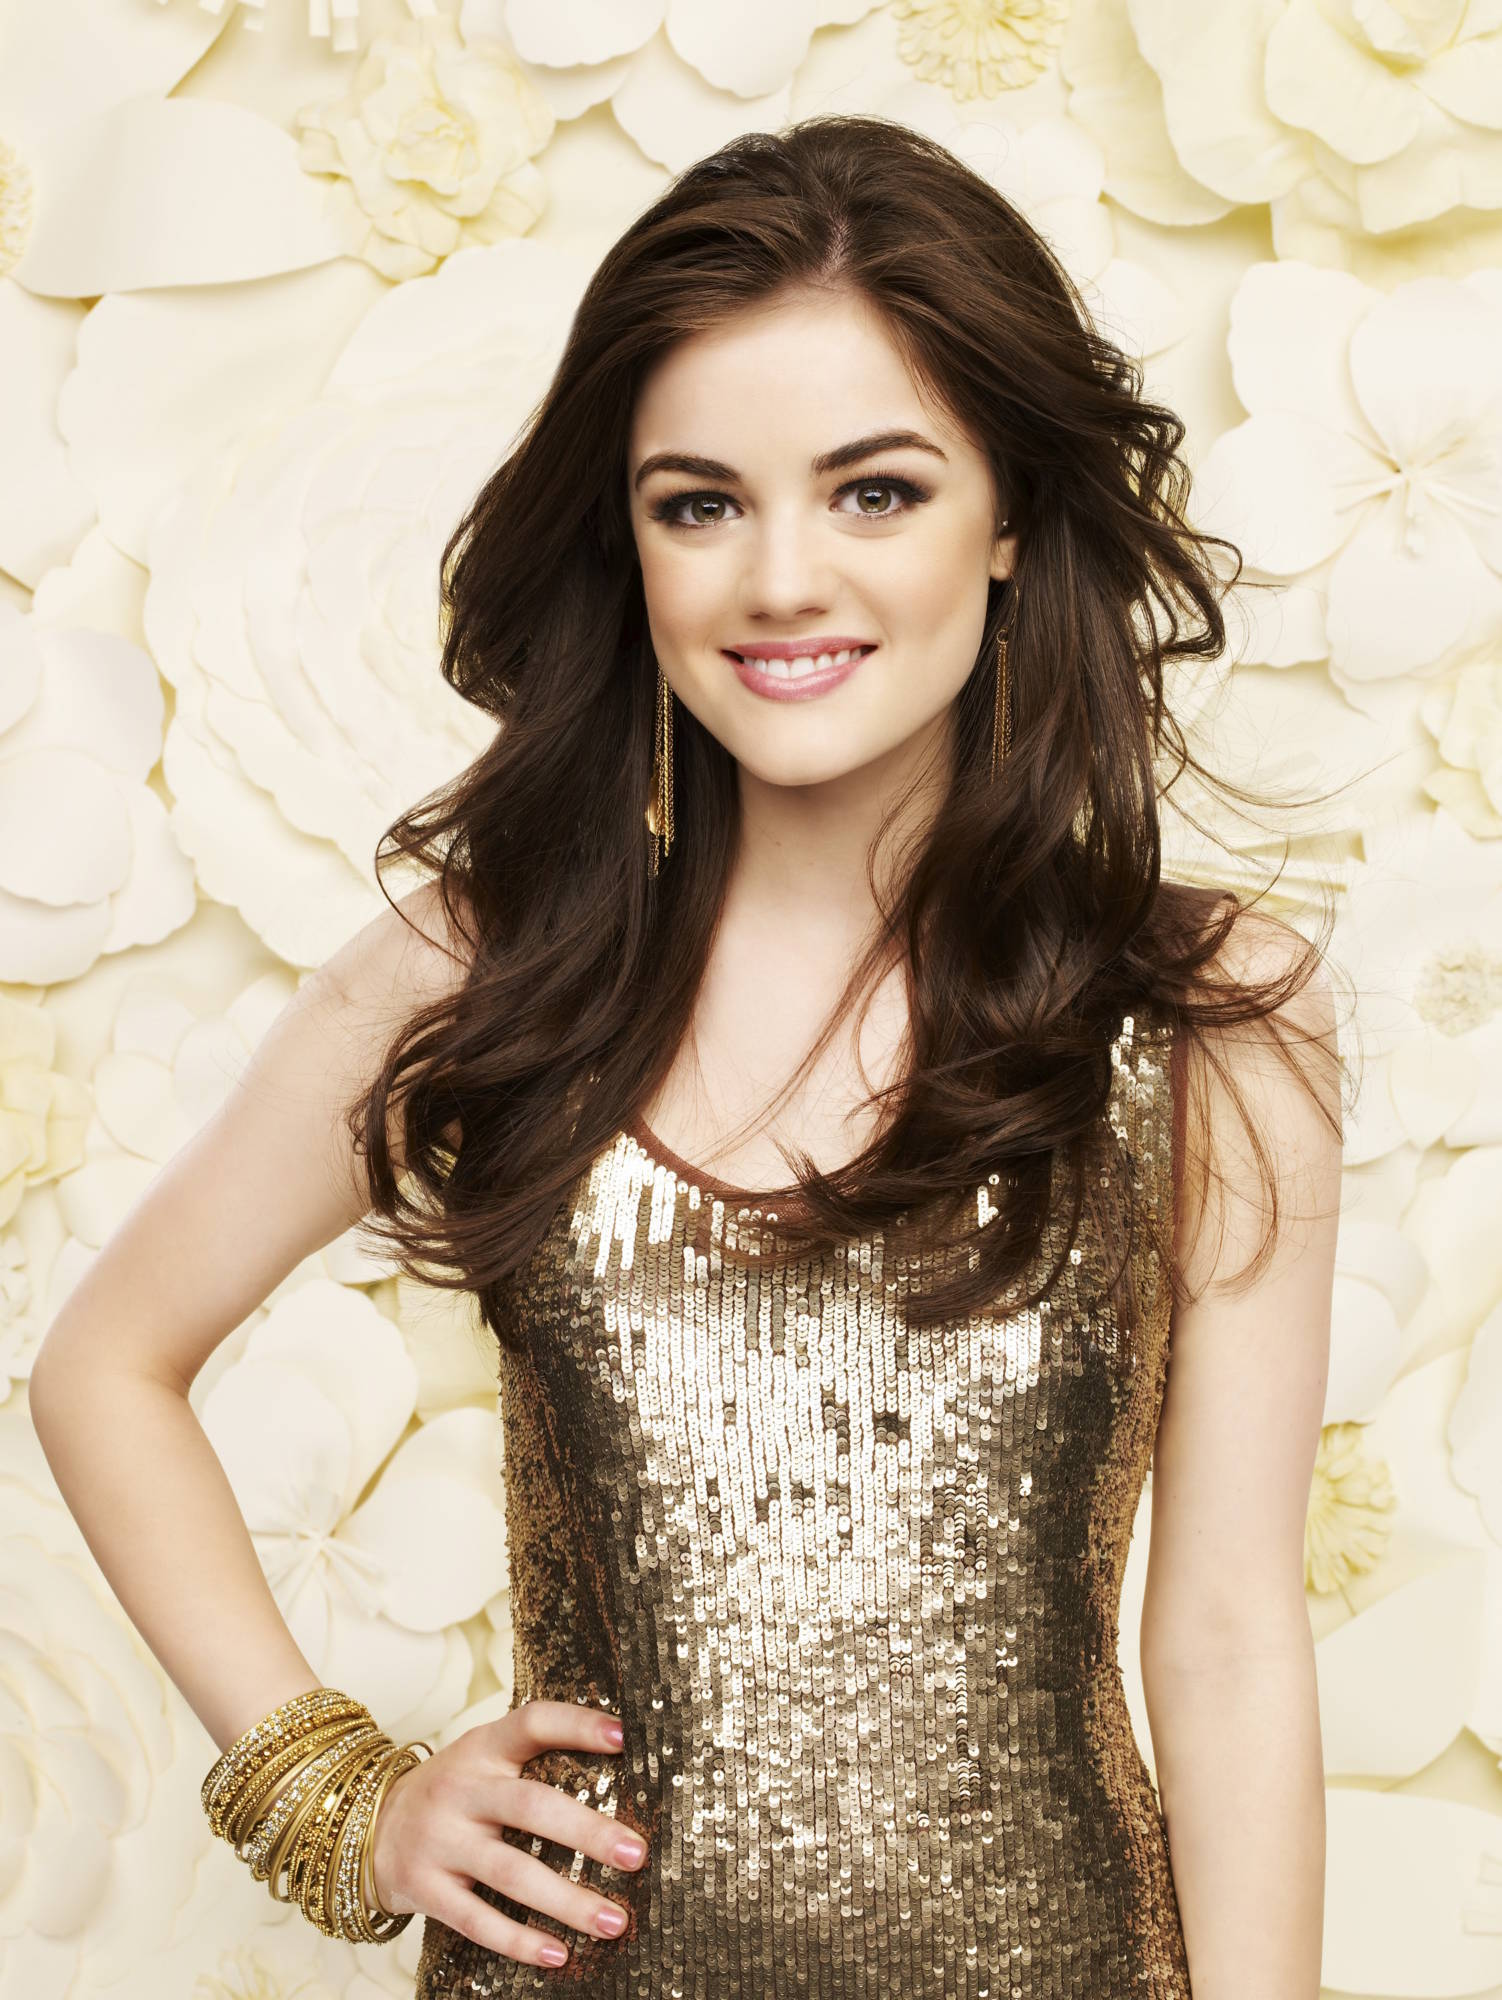 Lucy Hale Lucy Hale New Pretty Little Liars Photoshoot